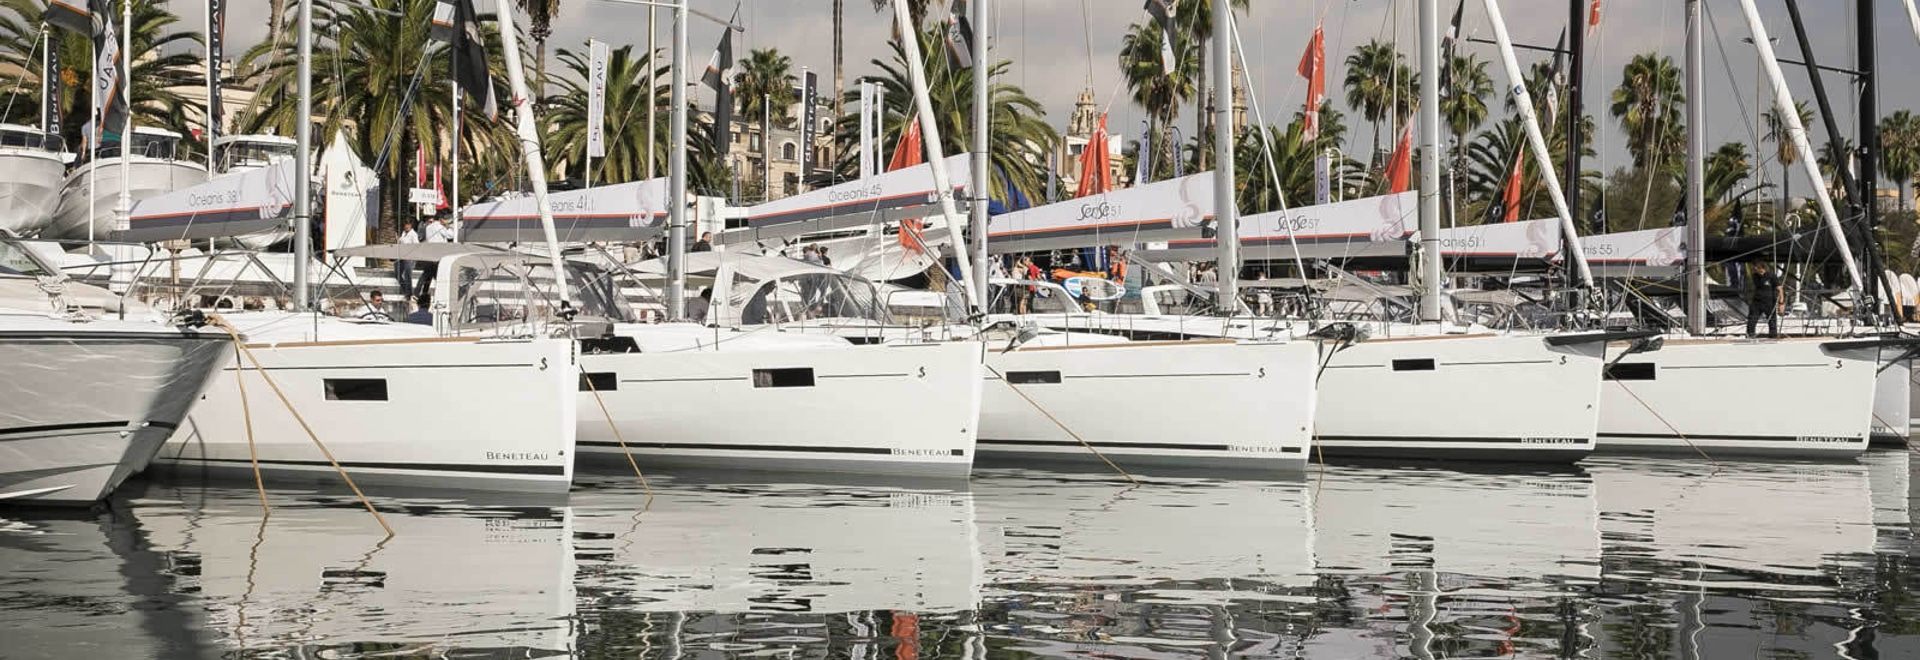 The Barcelona Boat Show presents its most innovative and entrepreneurial year